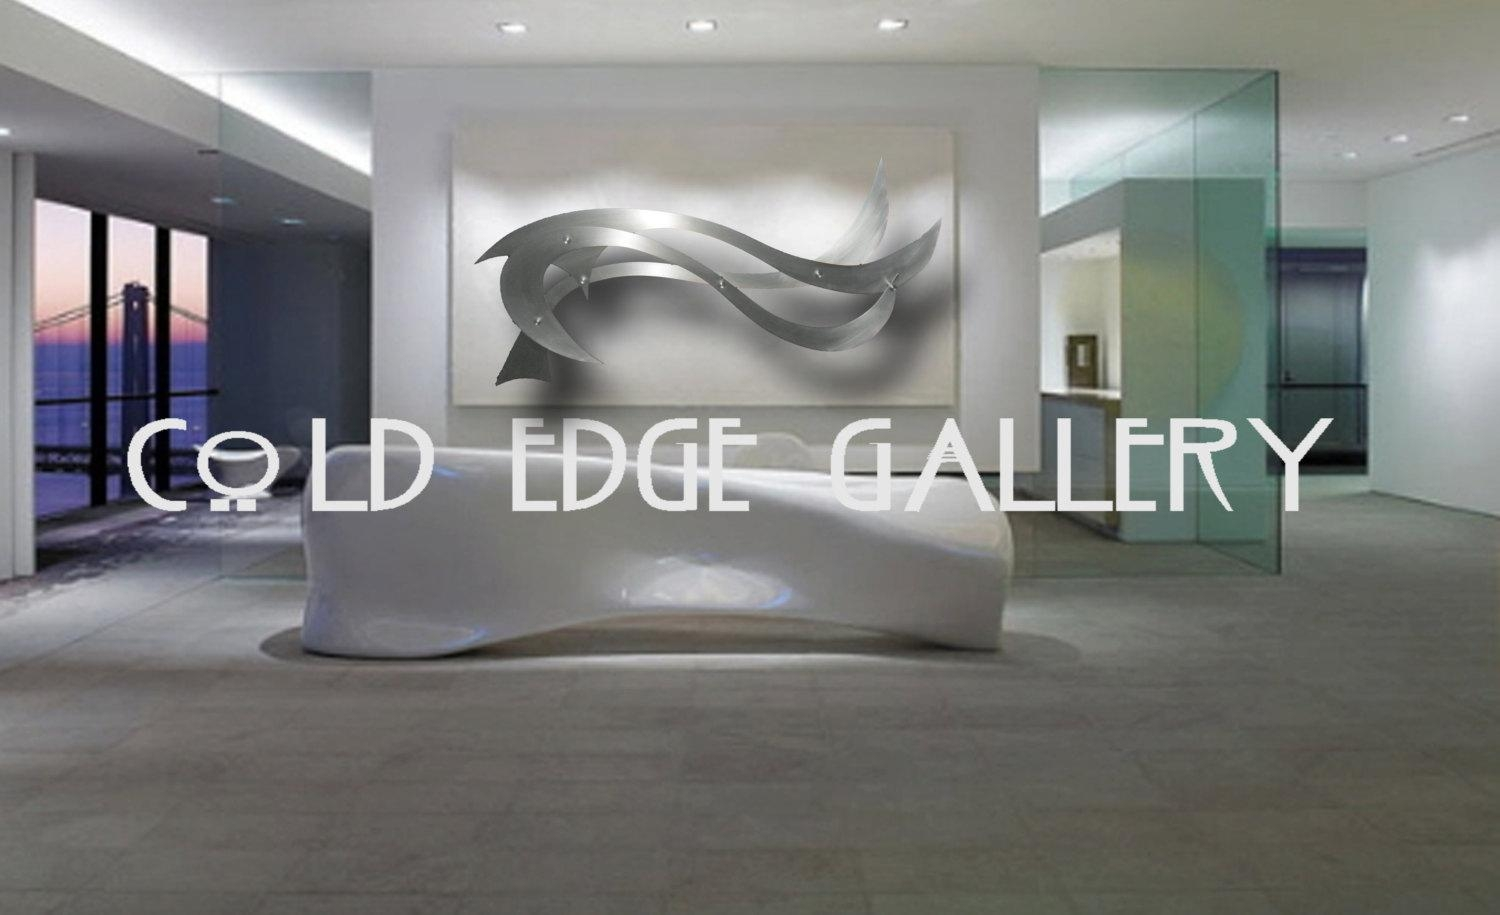 Large Metal Wall Art Corporate Wall Art Extra Large Wall Within Oversized Metal Wall Art (Image 11 of 23)